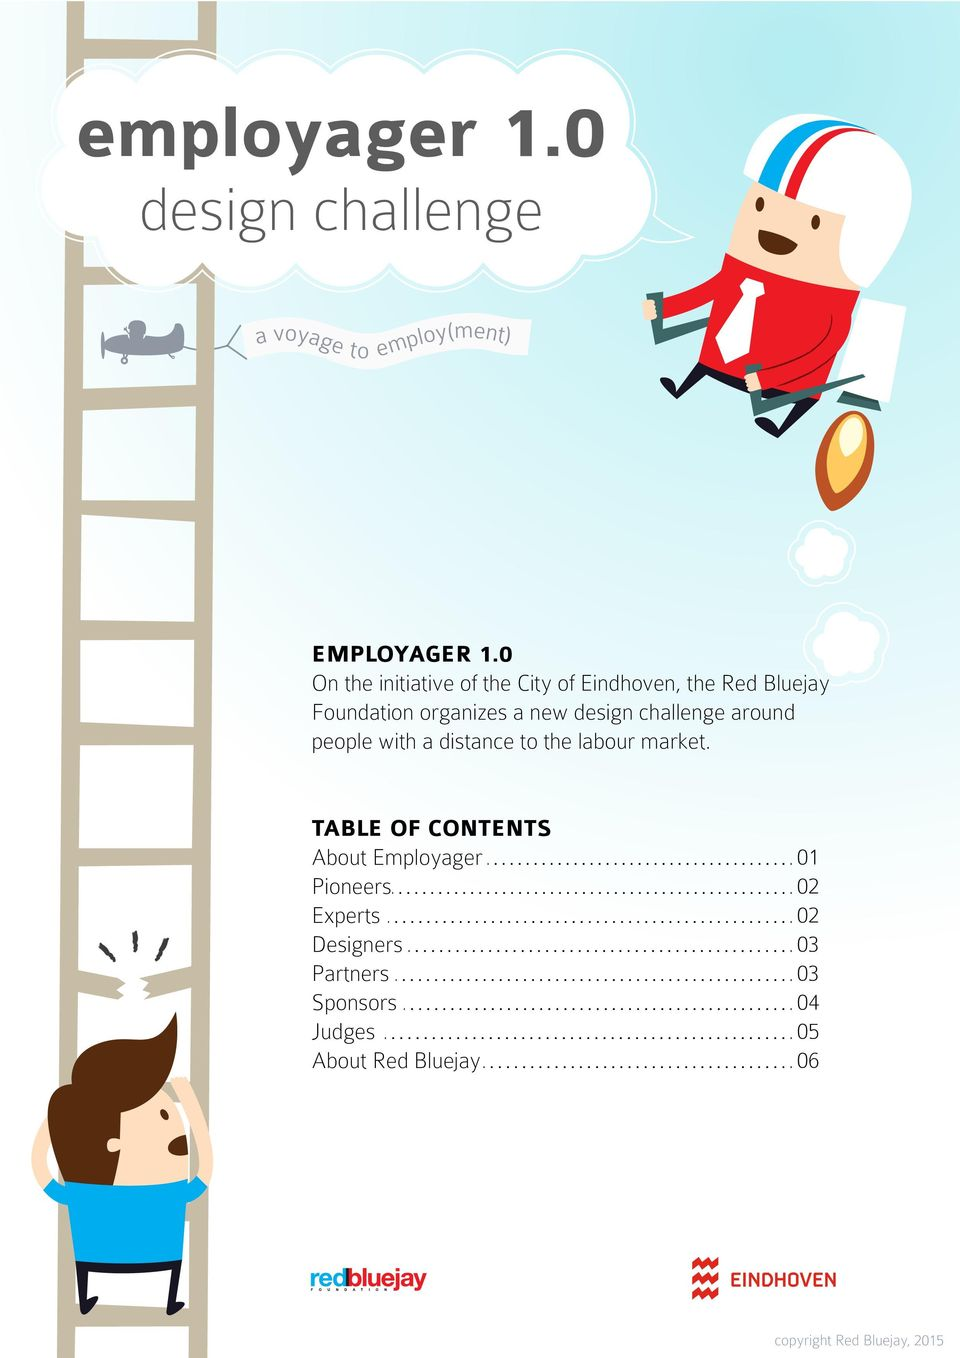 design challenge around people with a distance to the labour market.